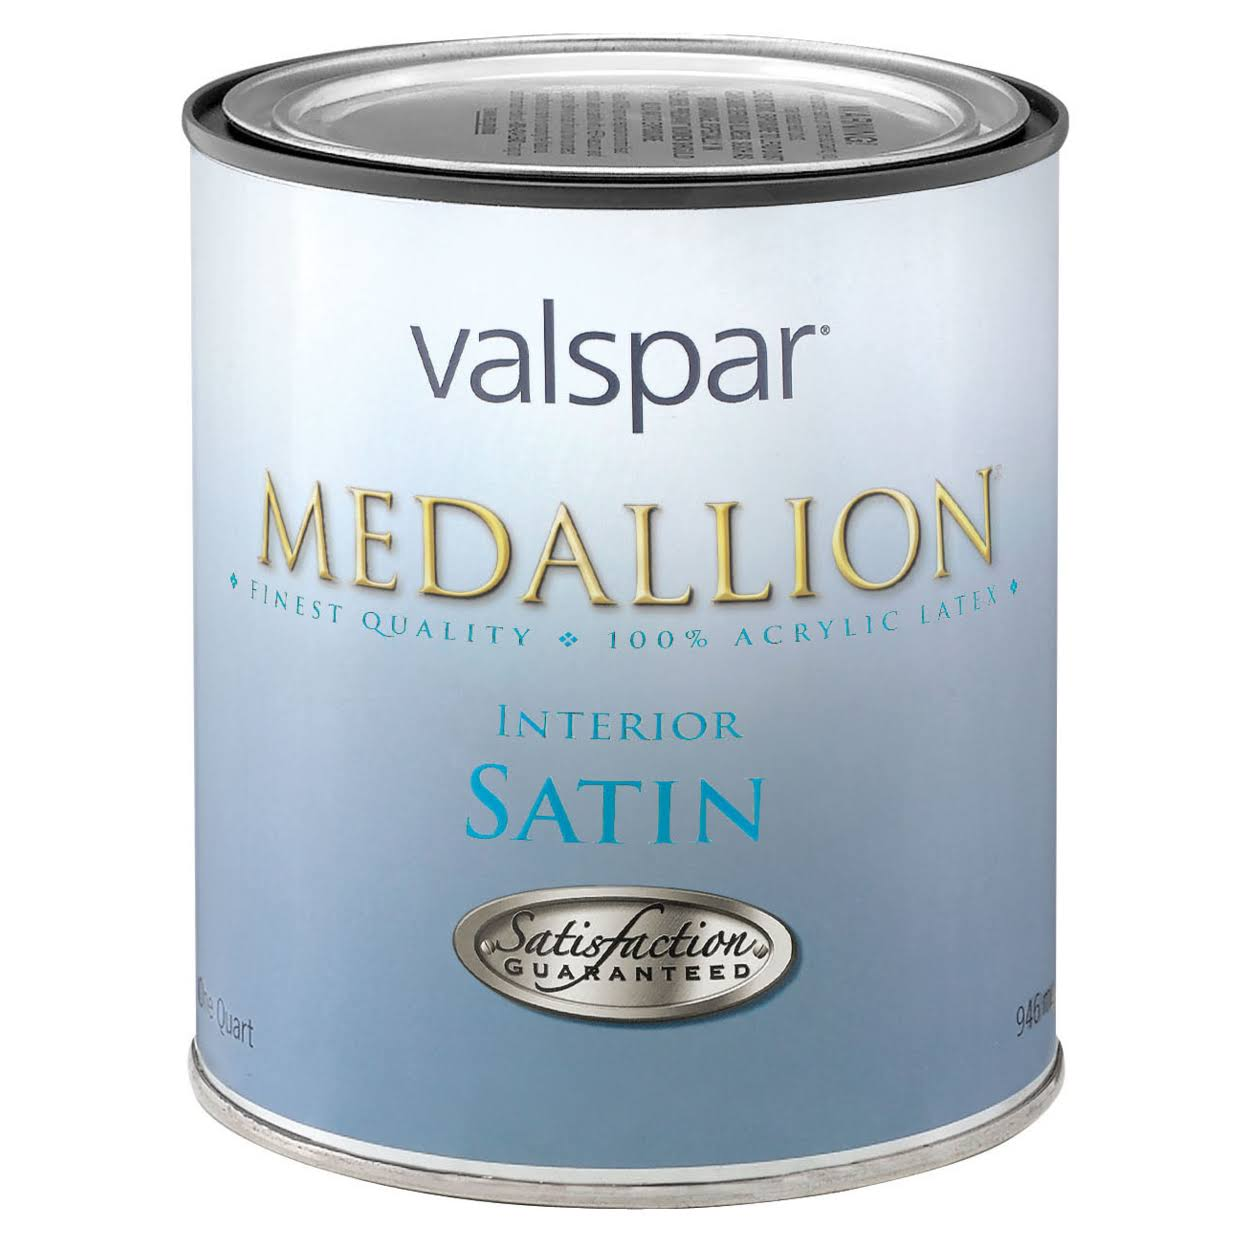 Valspar Medallion 100% Acrylic VOC Interior Paint - Satin